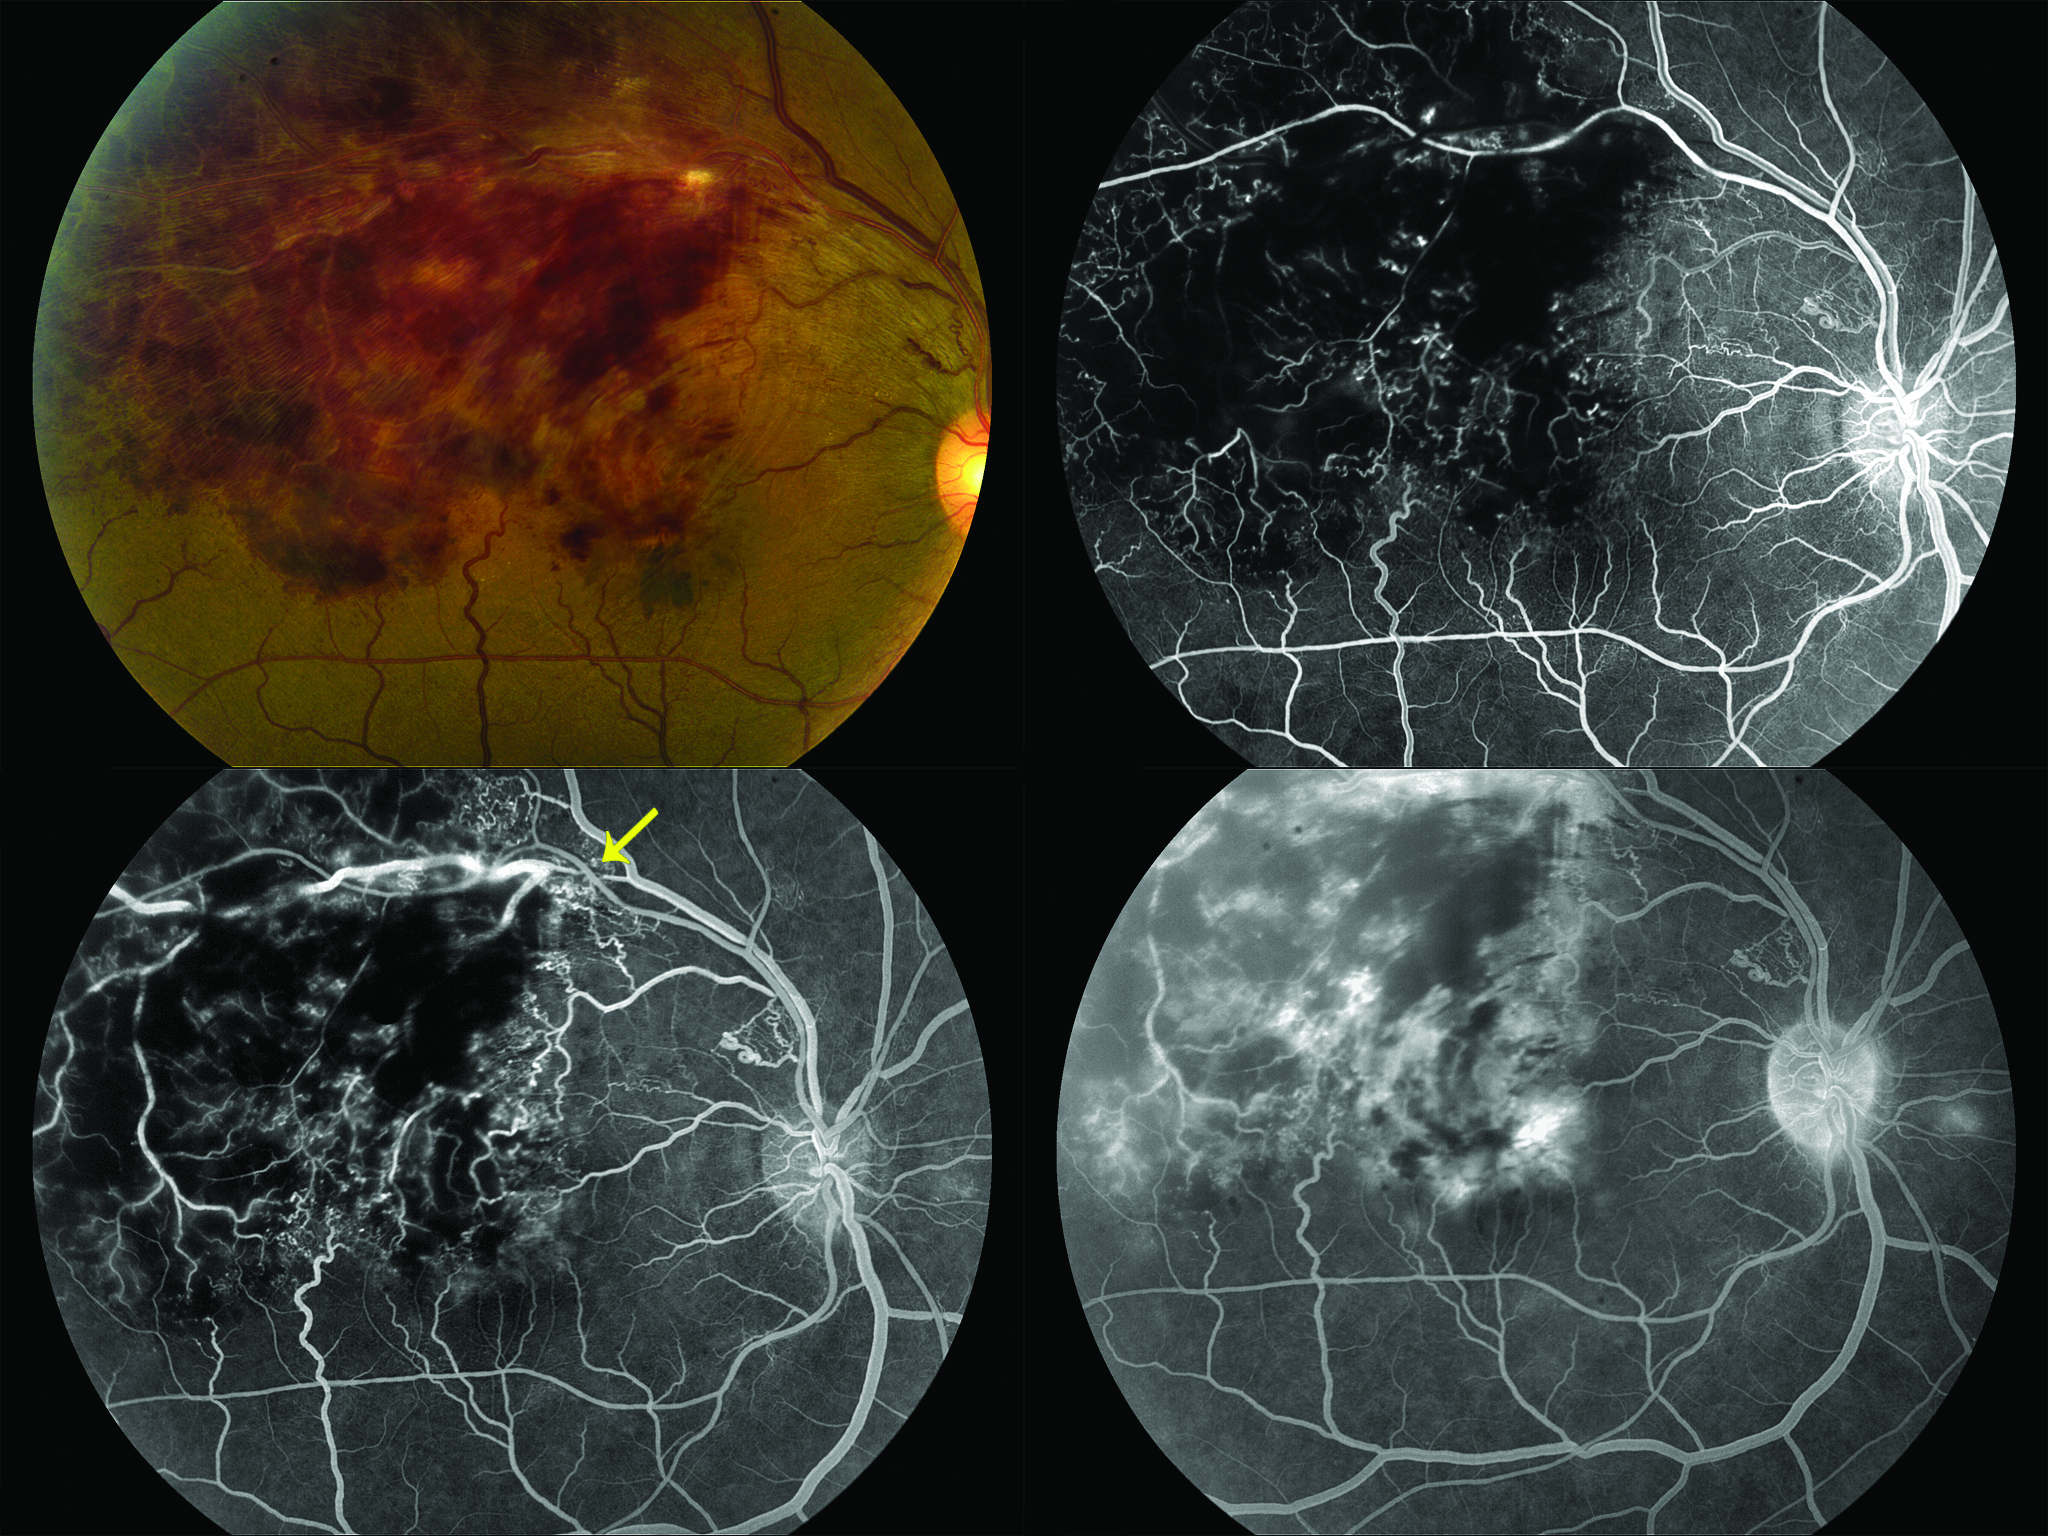 Branch retinal vein occlusion in a 41-year-old man. Note delayed venous filling in superior arcade (top right). Yellow arrow (bottom left) pointing to site of occlusion at an arterial-venous intersection. Late leakage within macula (bottom right).